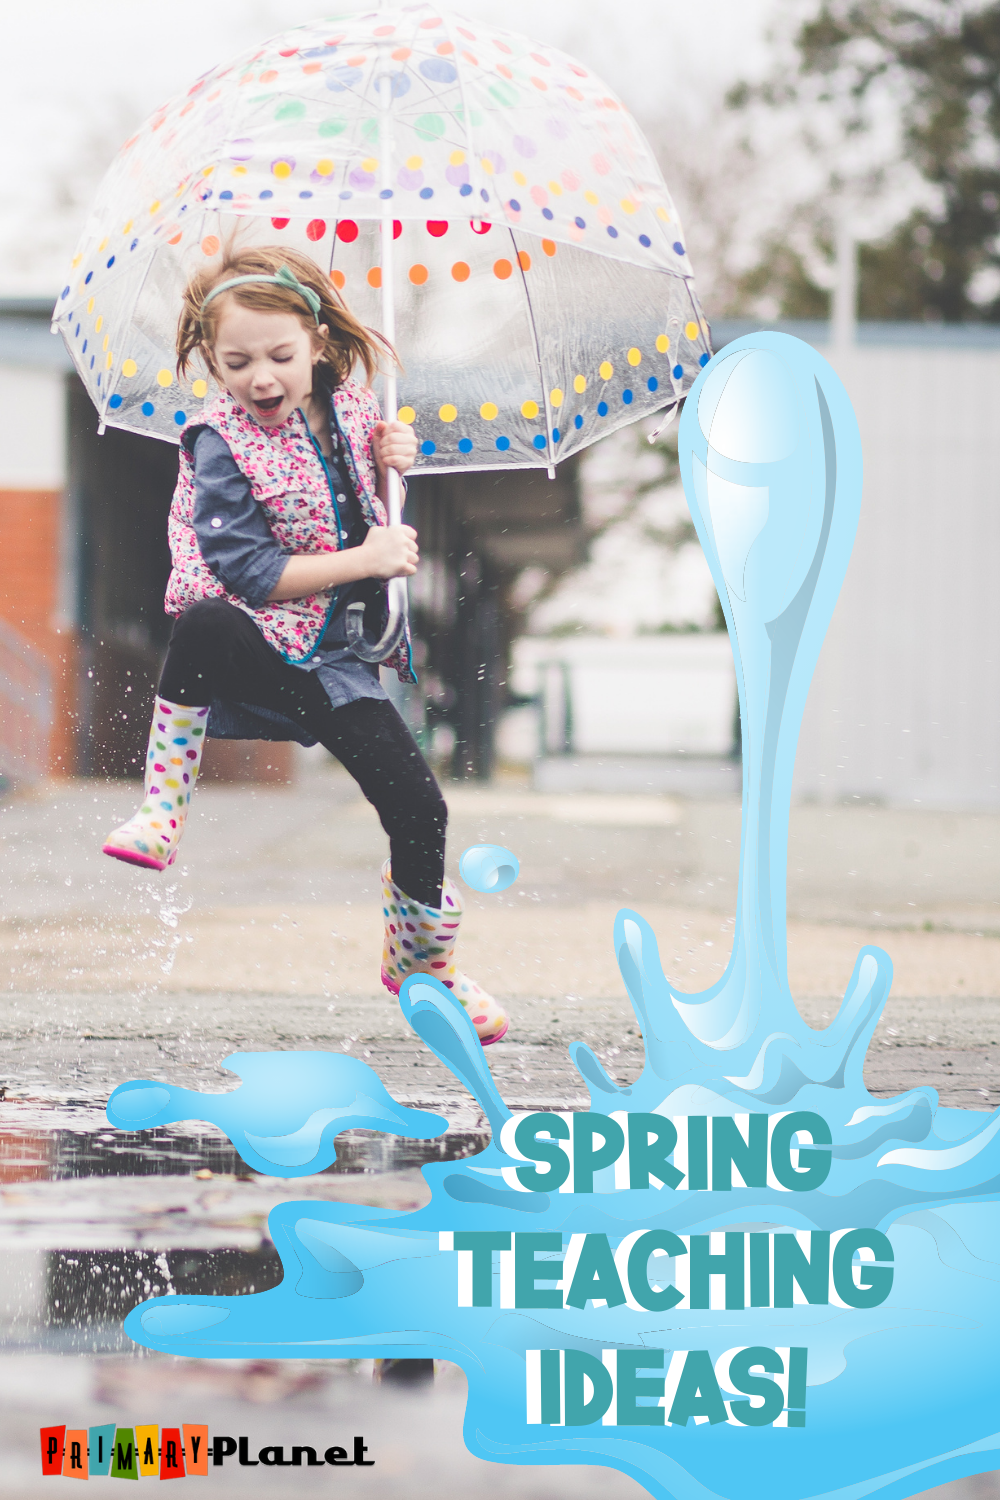 Fun Spring Teaching Ideas to keep your students engaged this Spring!